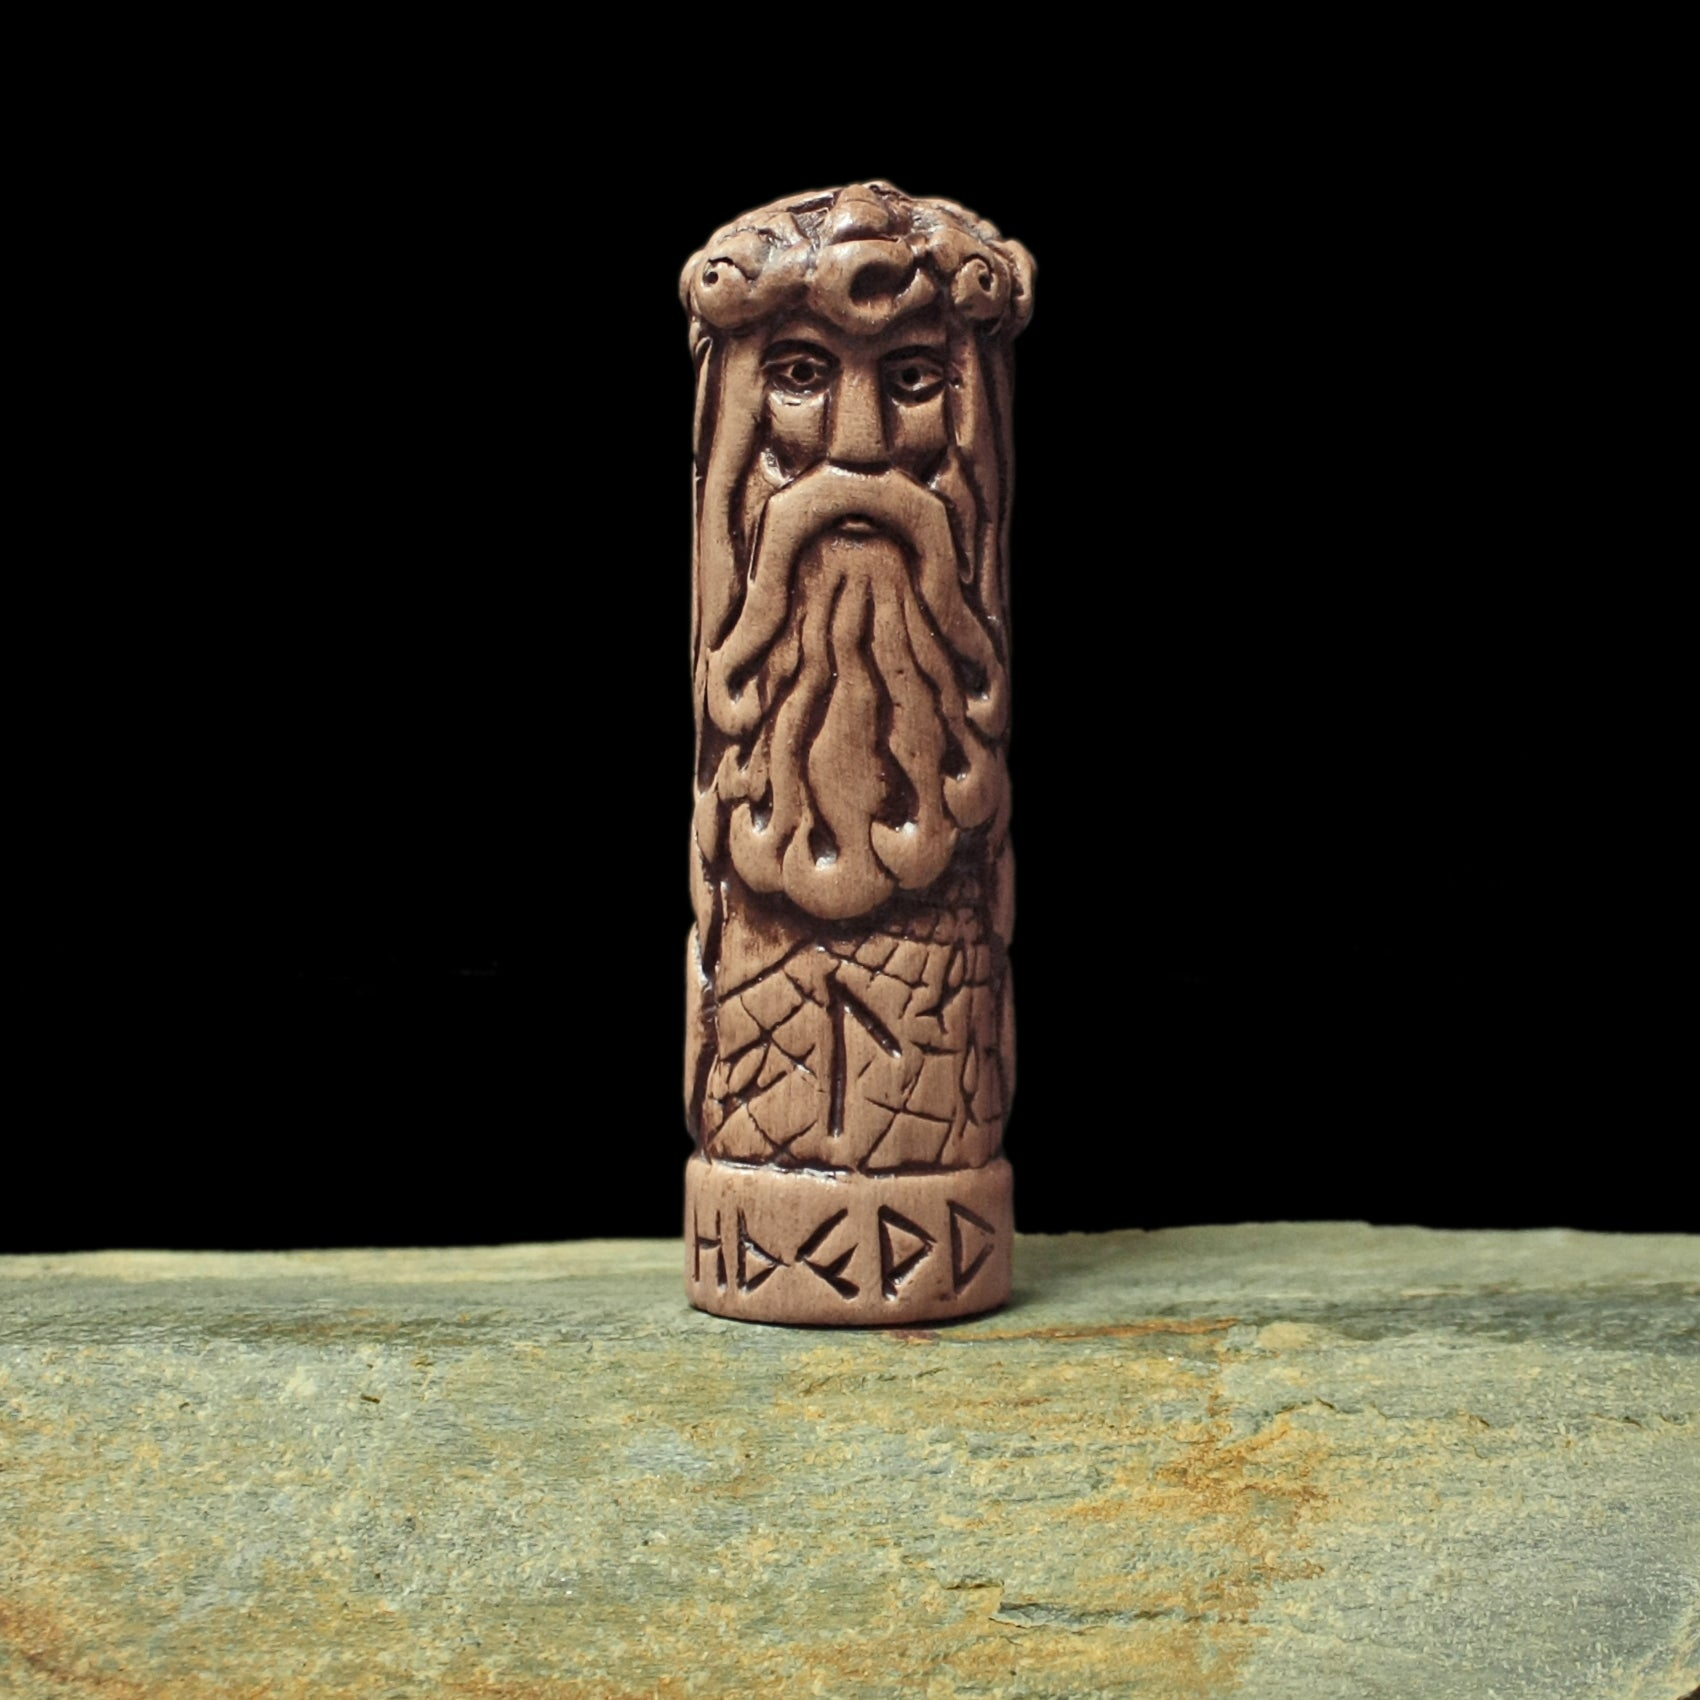 Hand-Crafted Ceramic Njord Statuette